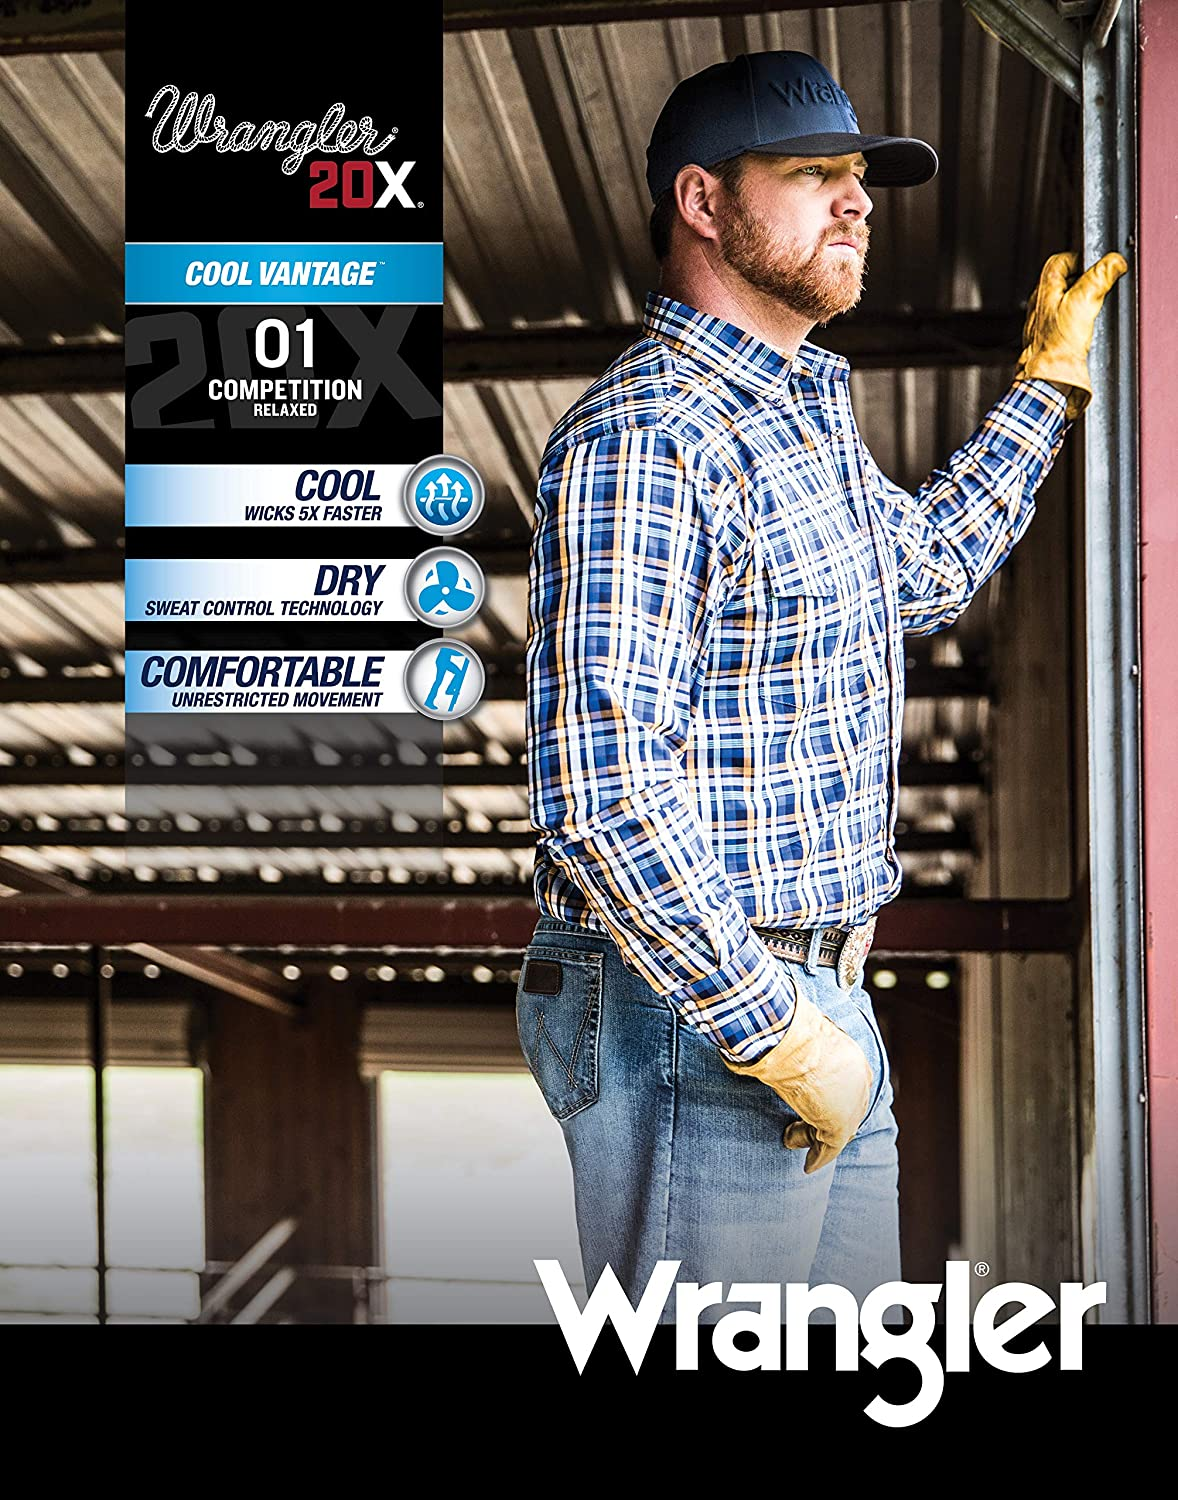 Wrangler Mens 20X Cool Vantage 01 Competition Relaxed Fit Jean